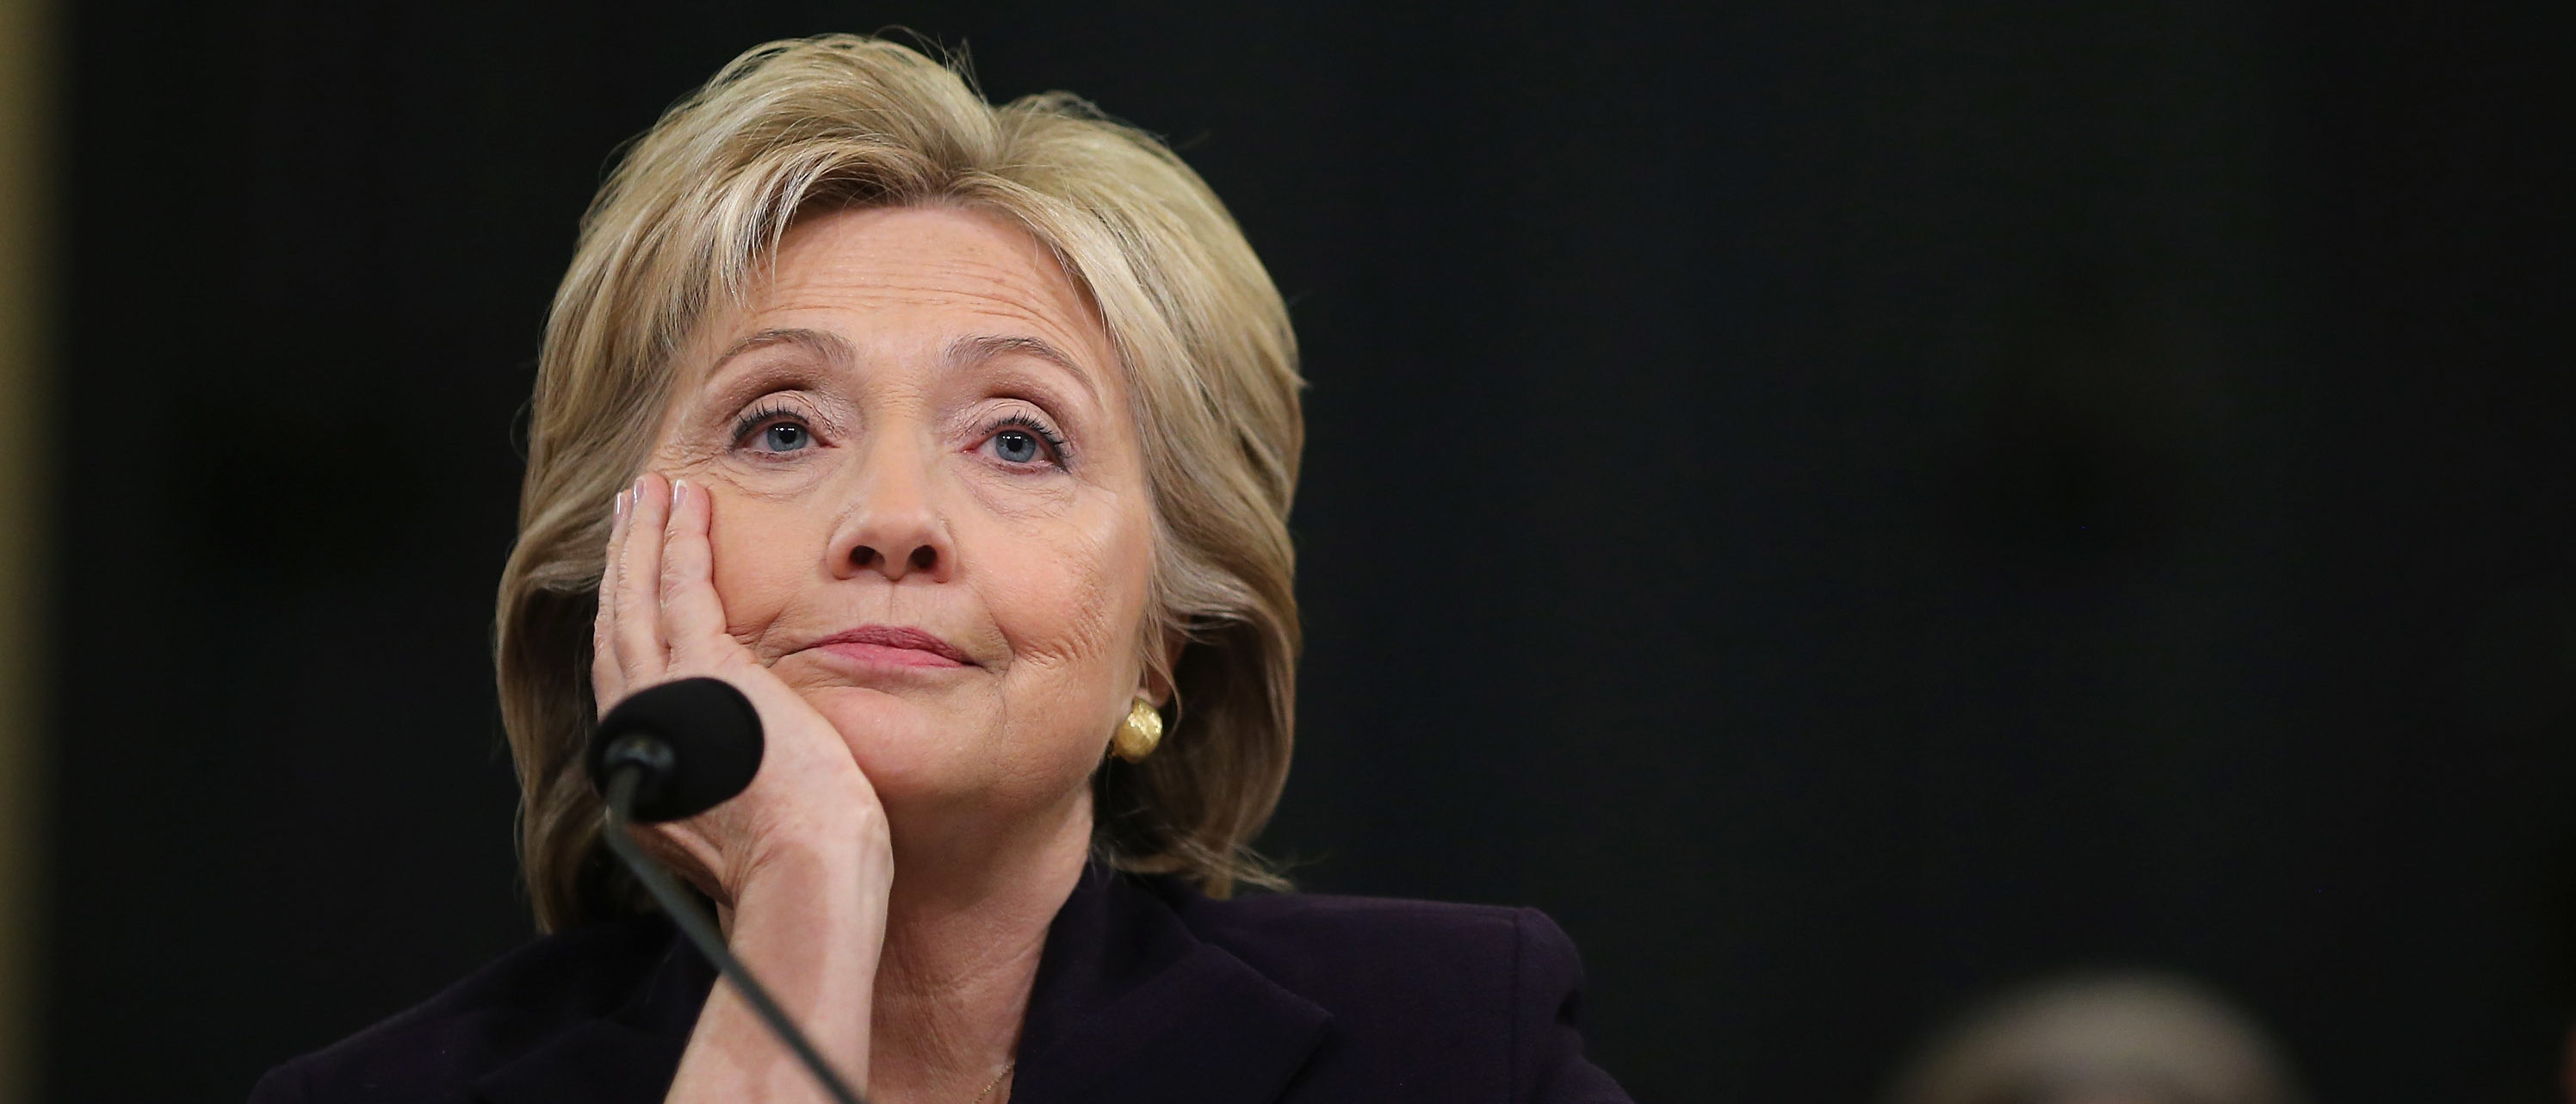 Democratic presidential candidate and former Secretary of State Hillary Clinton testifies before the House Select Committee on Benghazi October 22, 2015 on Capitol Hill in Washington, D.C. (Photo by Chip Somodevilla/Getty Images)